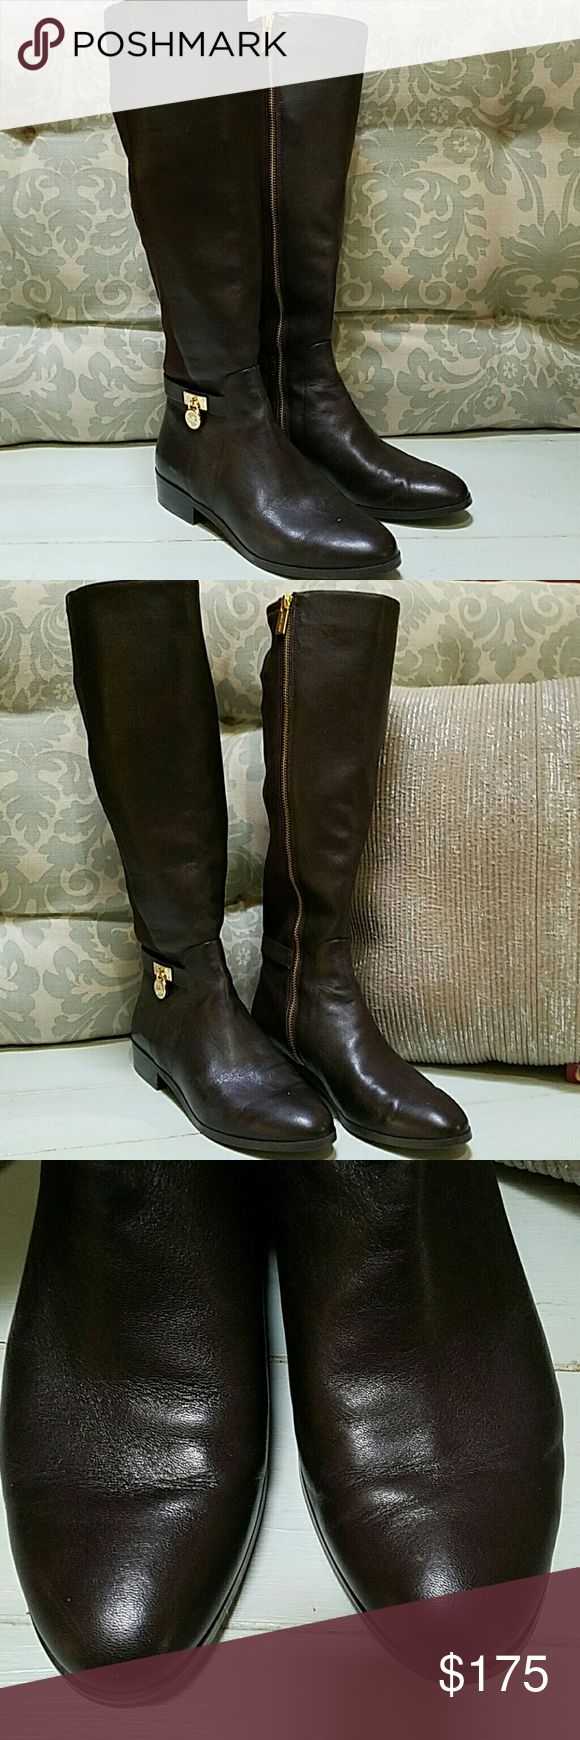 PRICE REDUCED Kors brown stretch boots worn once Michael Kors brown stretch boots worn once Michael Kors Shoes Winter & Rain Boots